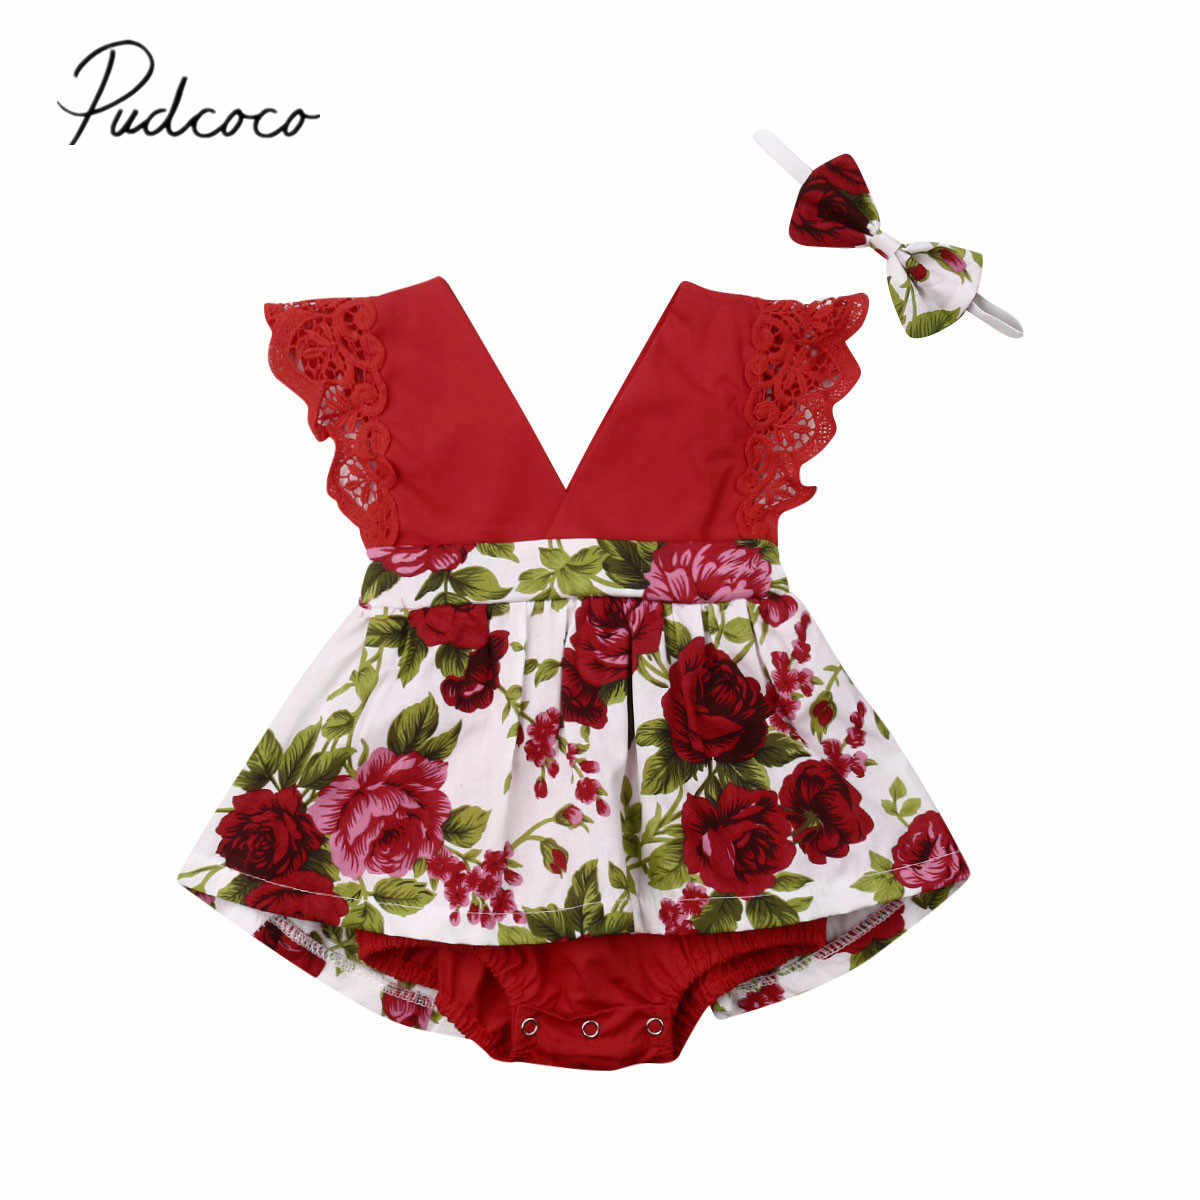 2019 Baby Summer Clothing Infant Baby Girls Floral Bodysuit Dress Sleeveless Lace V-Neck Ruffles Jumpsuit Headband Outfits